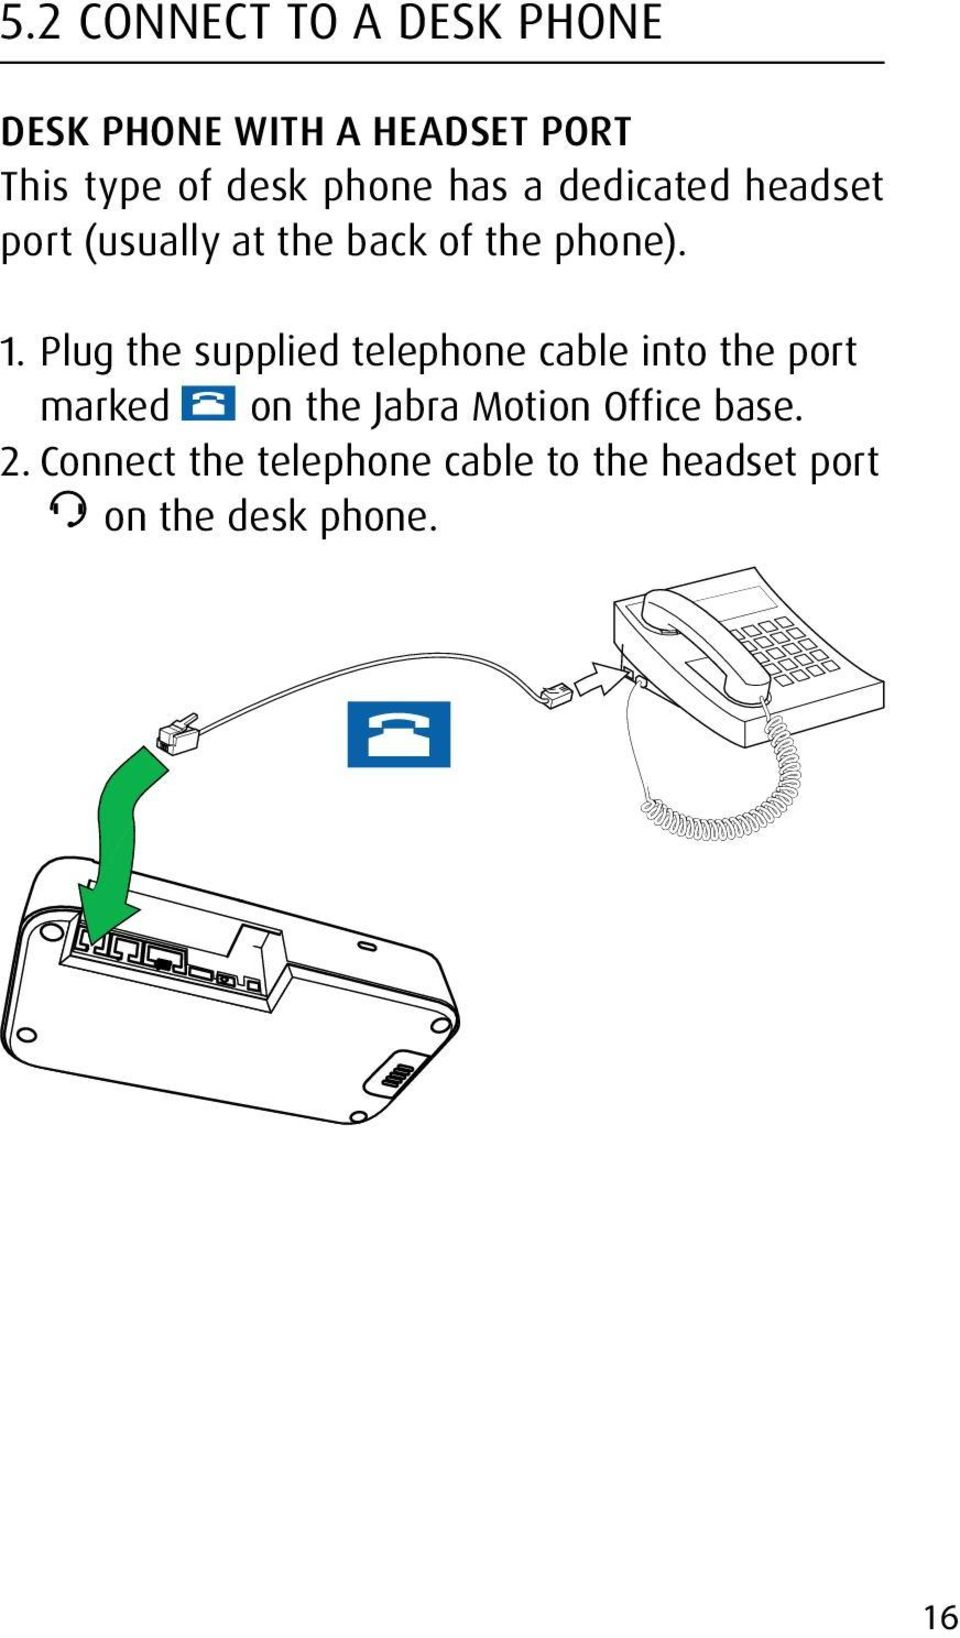 Plug the supplied telephone cable into the port marked on the Jabra Motion